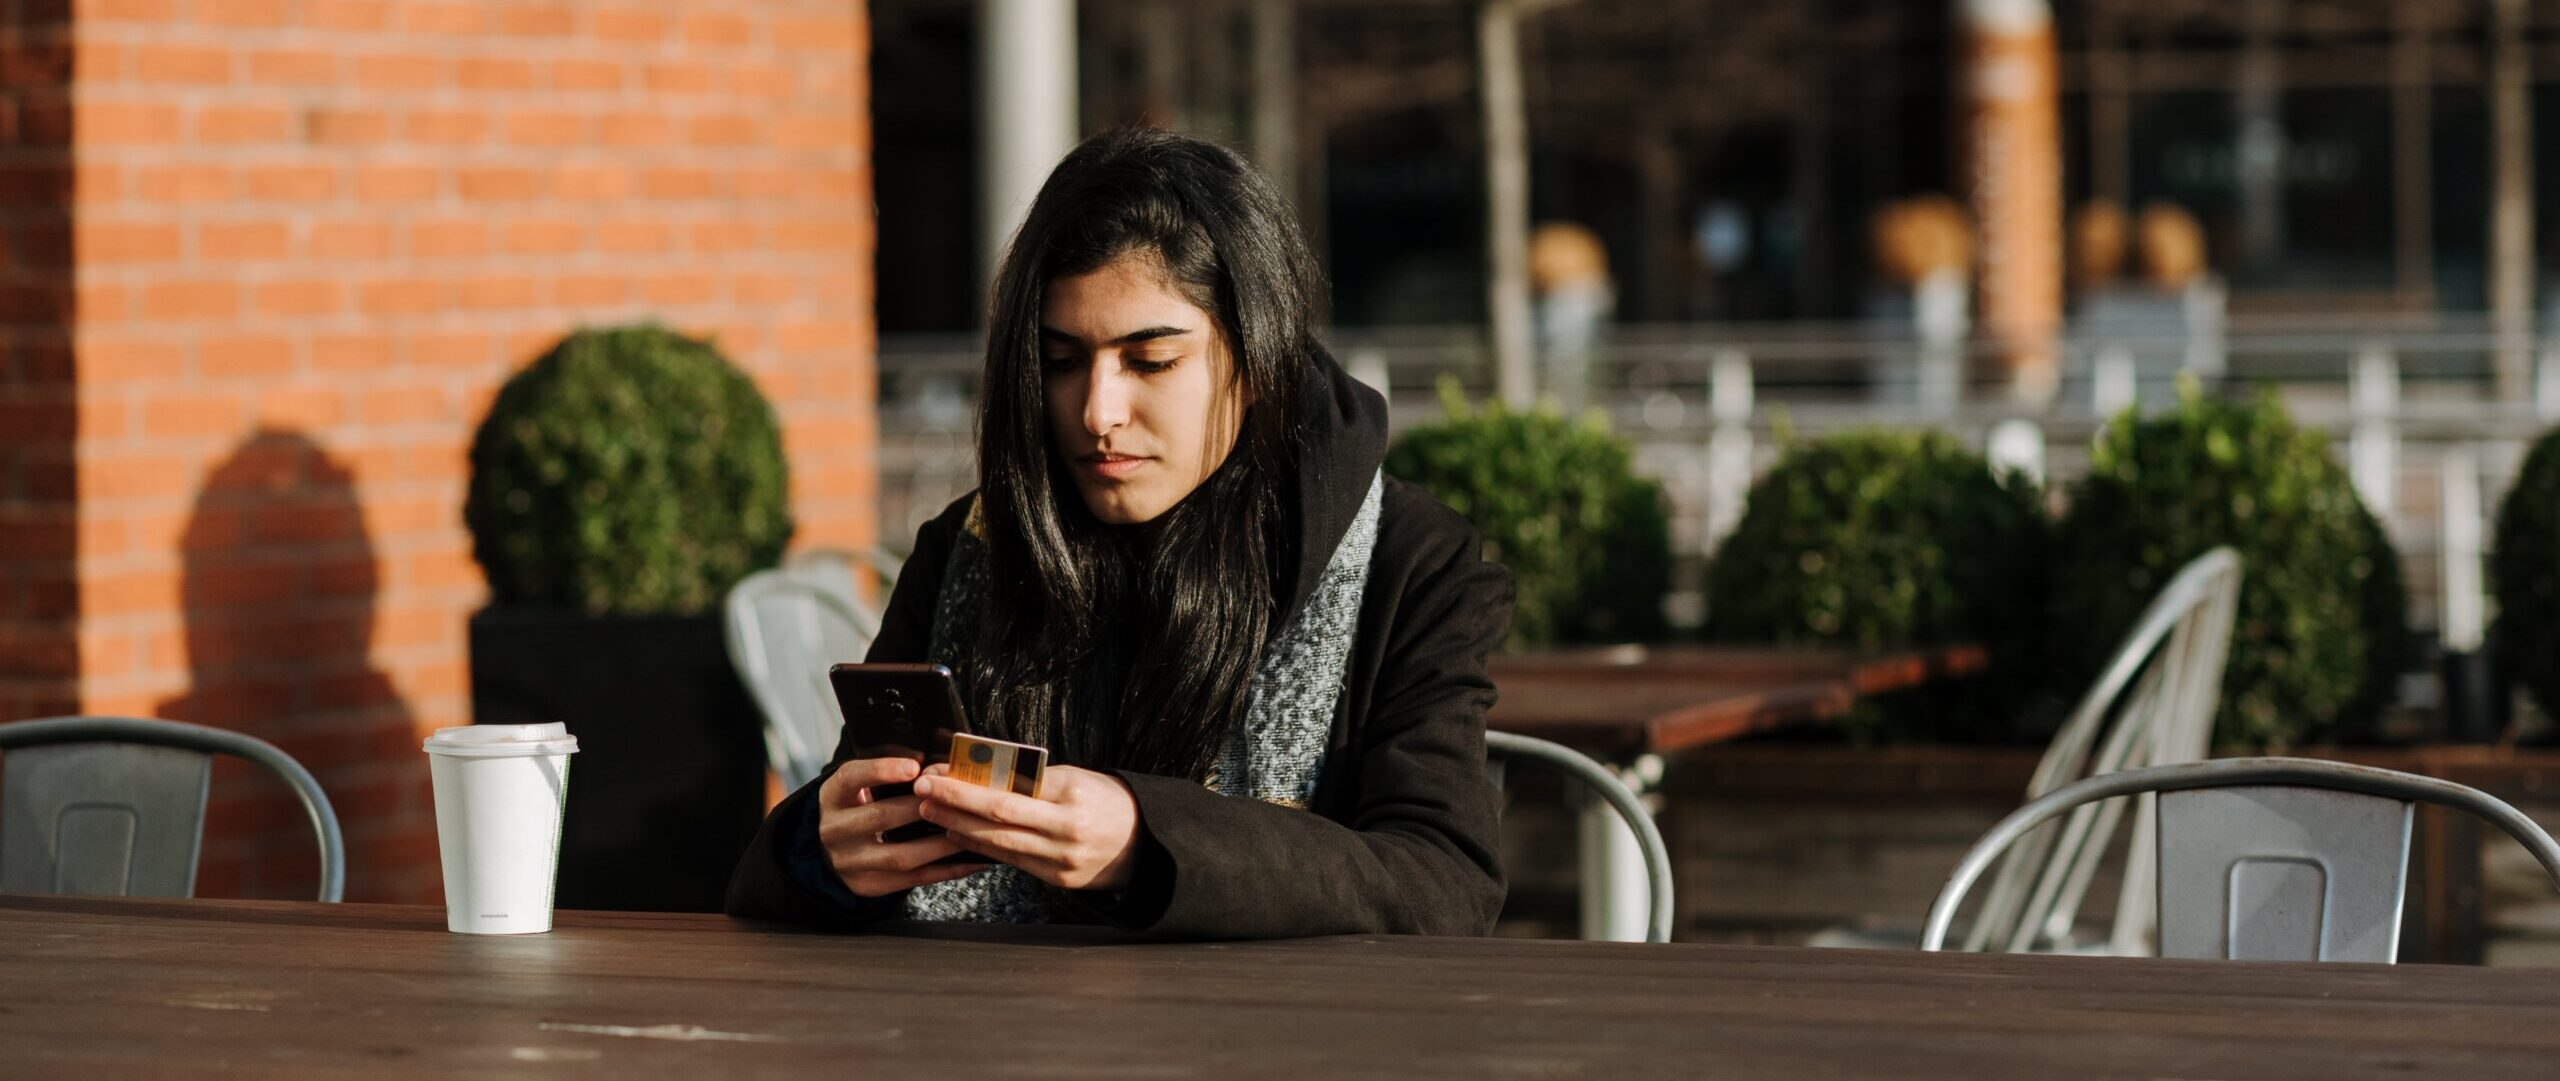 girl sitting outside coffee shop with coffee drink on her phone using the SBR mobile app.